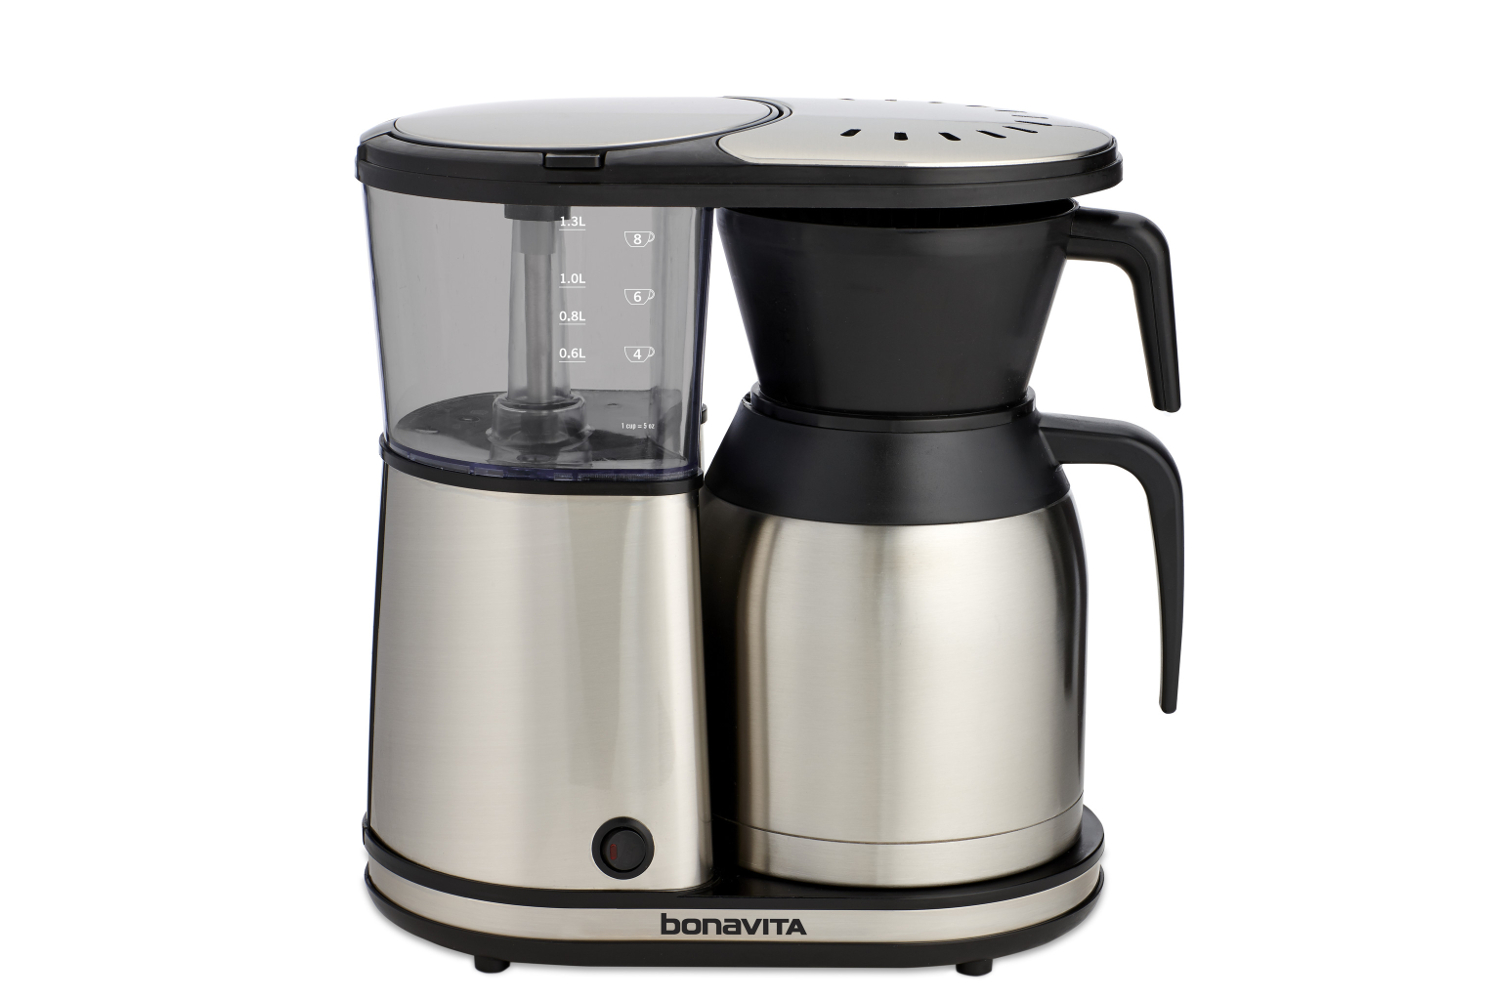 Bonavita 8 Cup Thermal Carafe Coffee Brewer - Stainless Steel